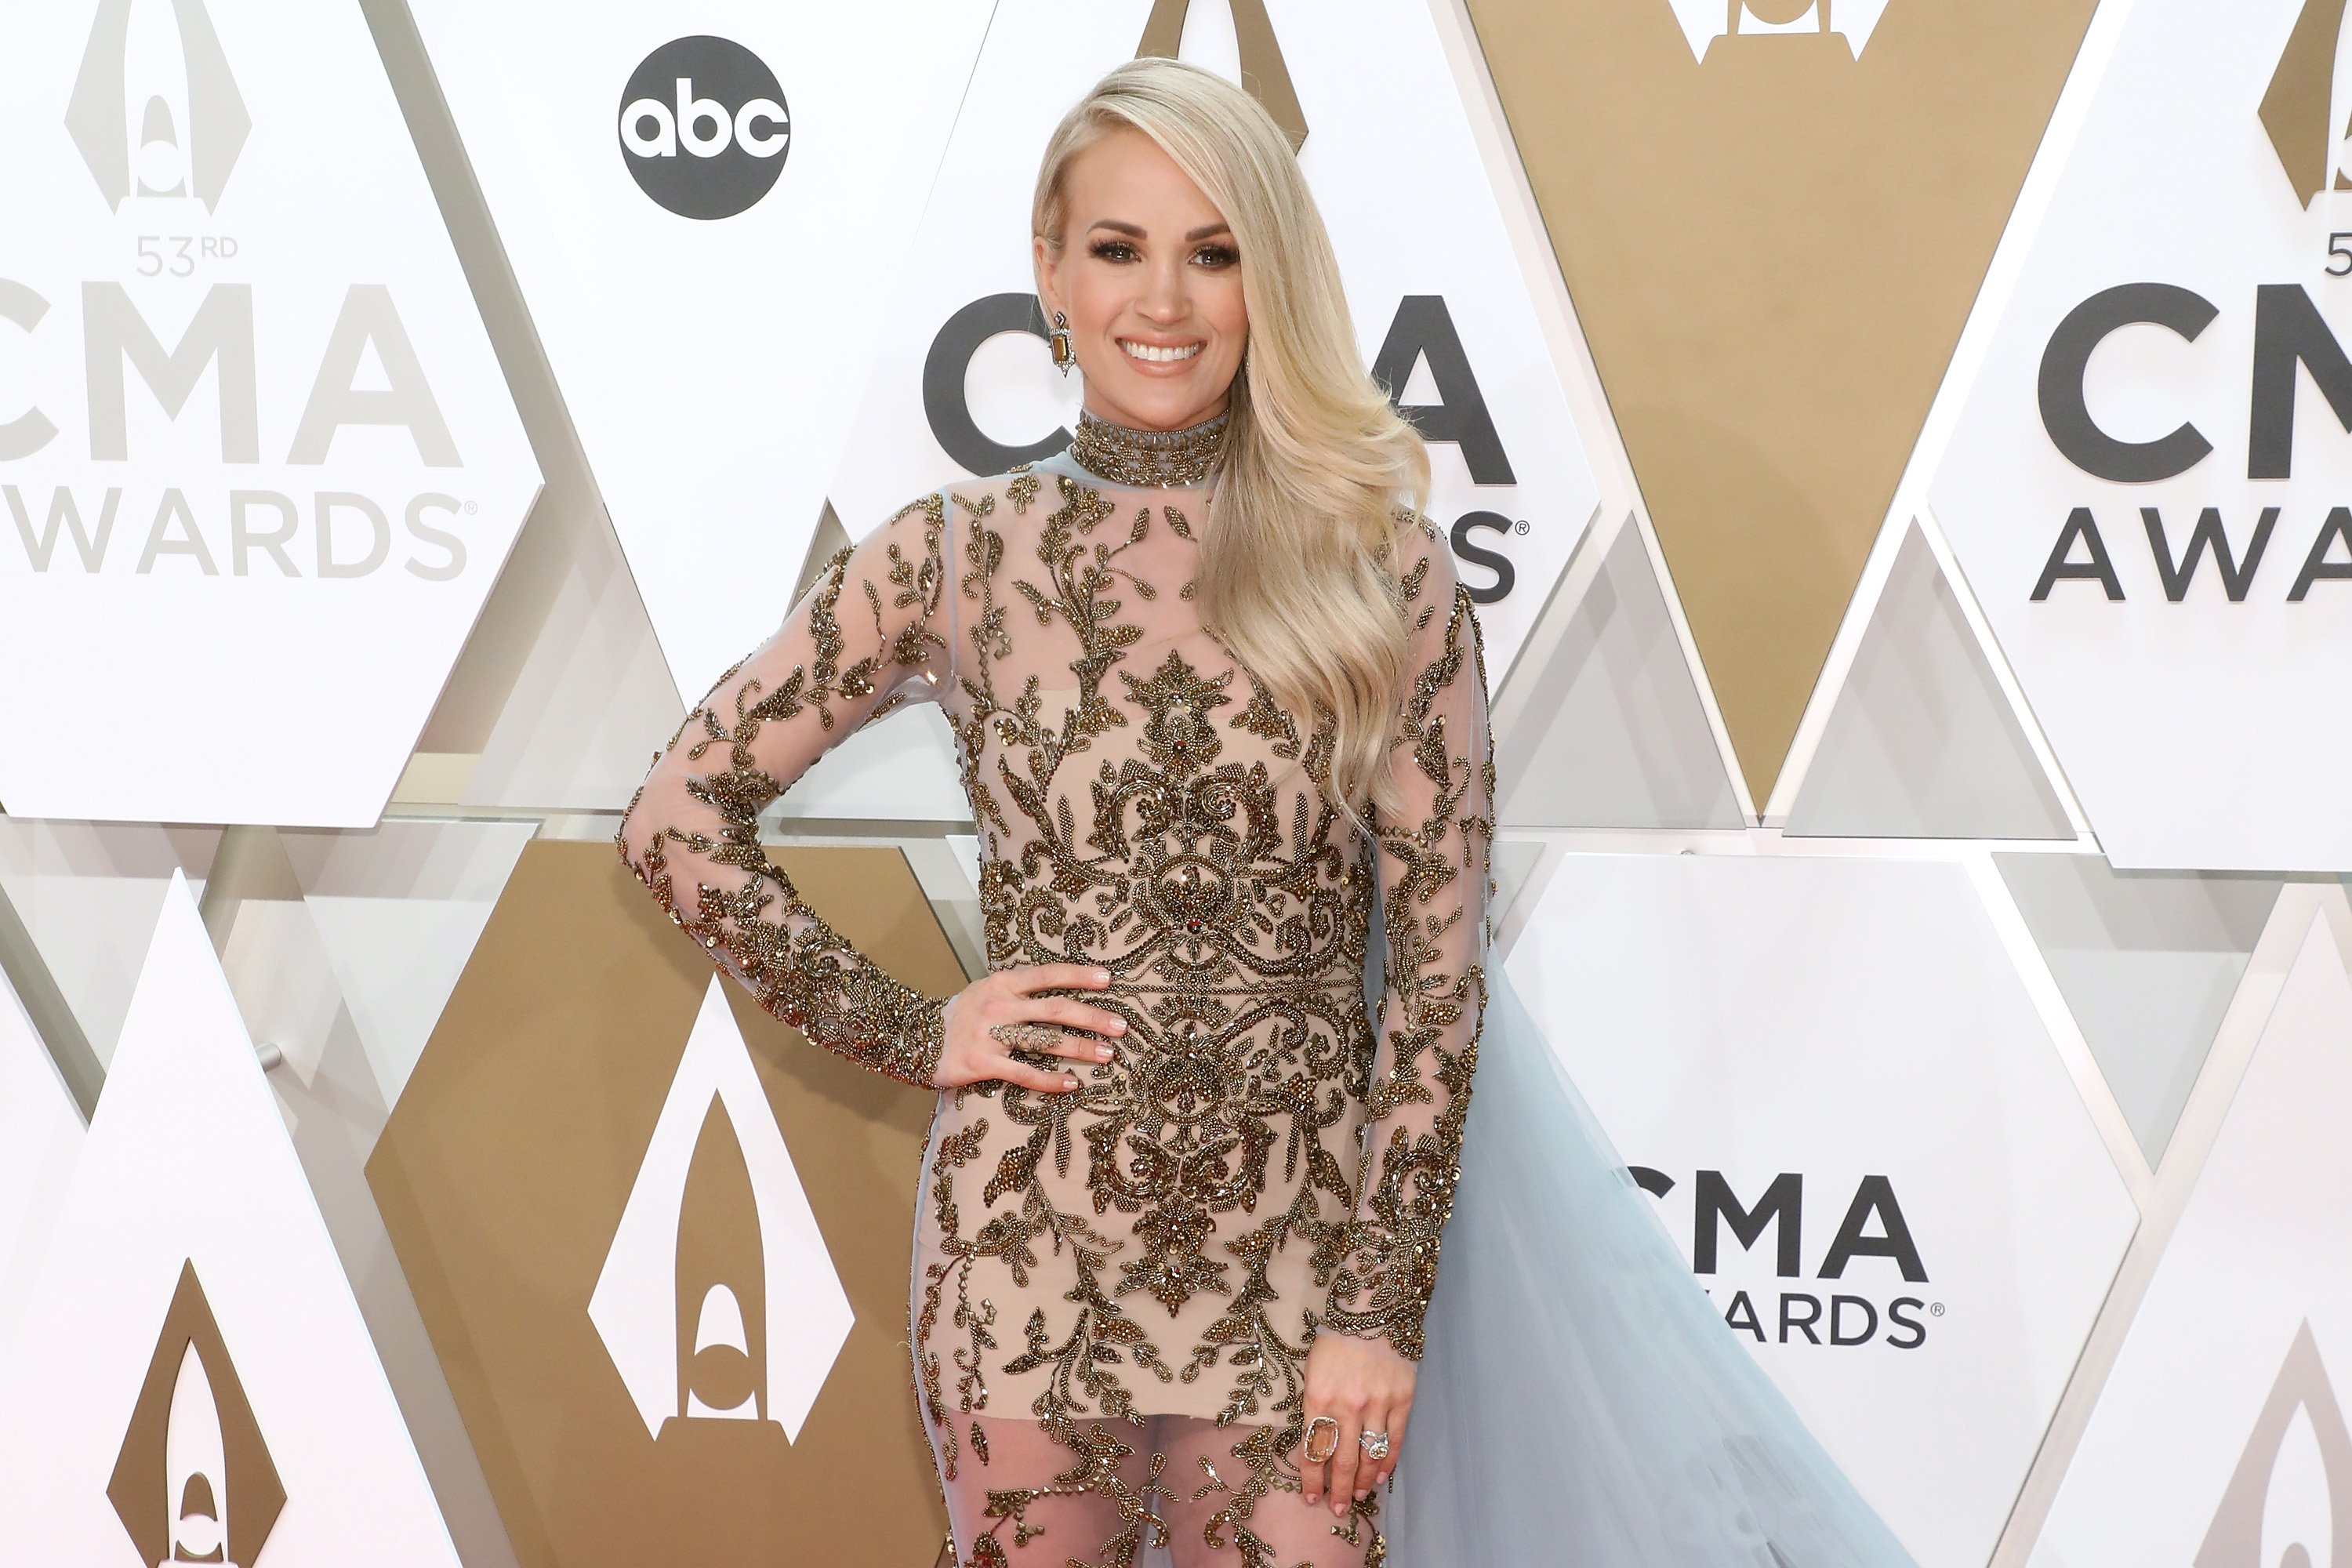 Carrie Underwood attends the 53nd annual CMA Awards at Bridgestone Arena on November 13, 2019 | Photo: GettyImages